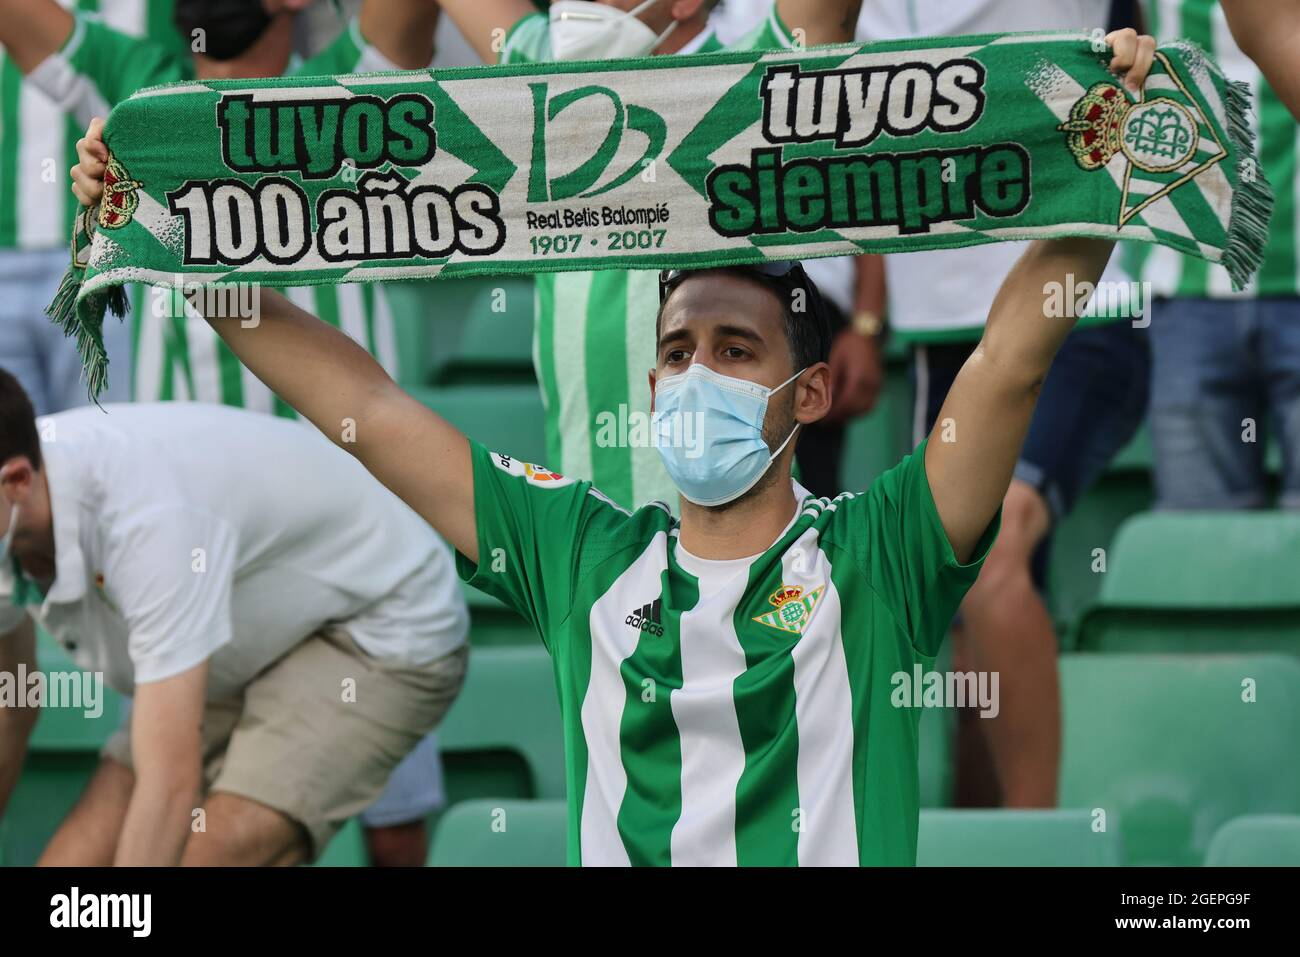 Real Betis Balompié . Seville Spain 20th Aug 2021 Fans Of Real Betis During The La Liga Santader Match Between Real Betis Balompie And Cadiz Cf At Benito Villamarin In Seville Spain On August 20 2021